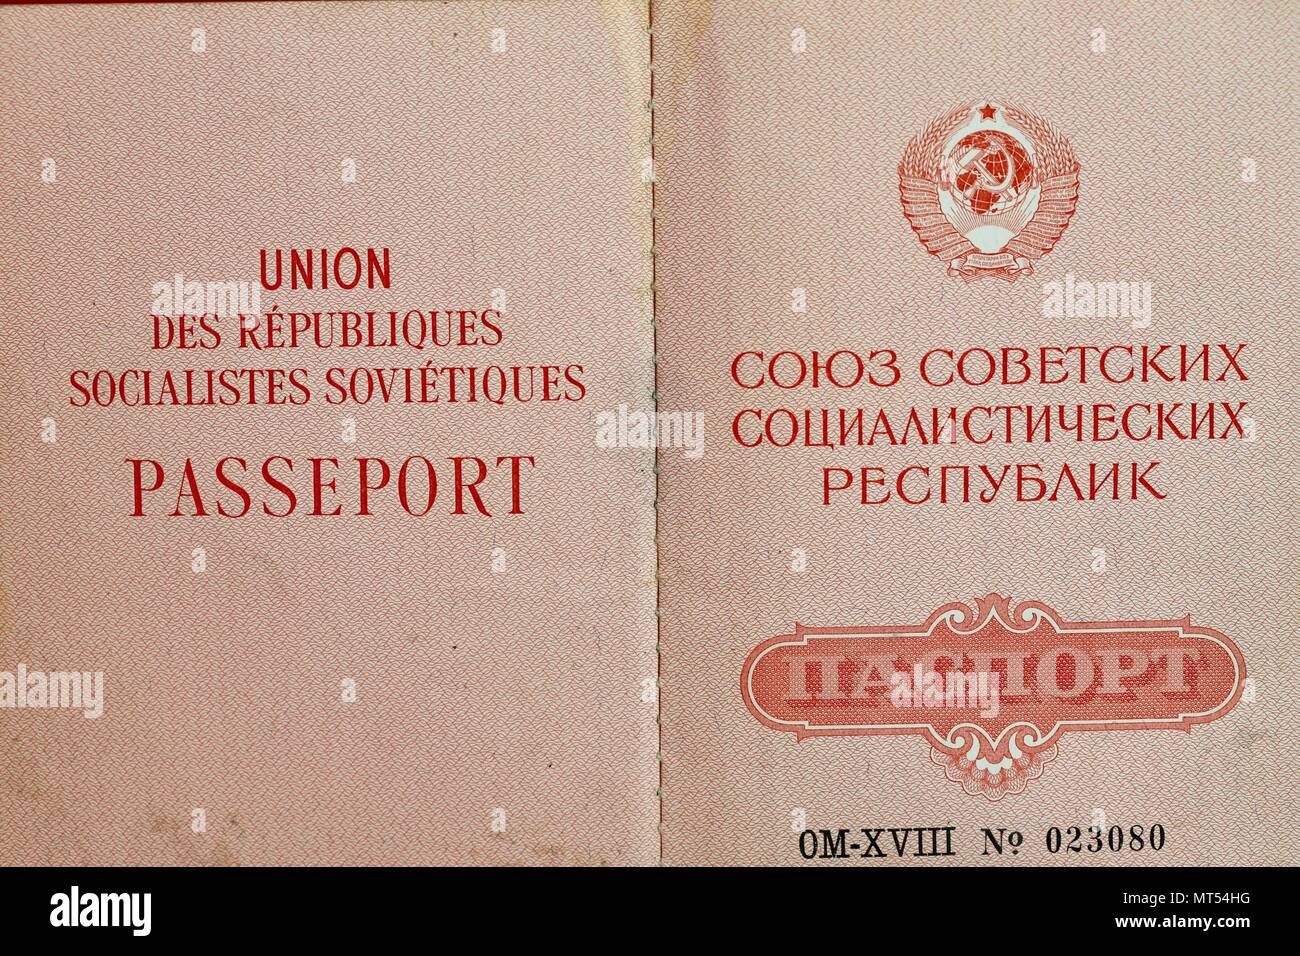 1980s/ 1990s CCCP / USSR/ Soviet / Russian passport issued to a female citizen. - Stock Image